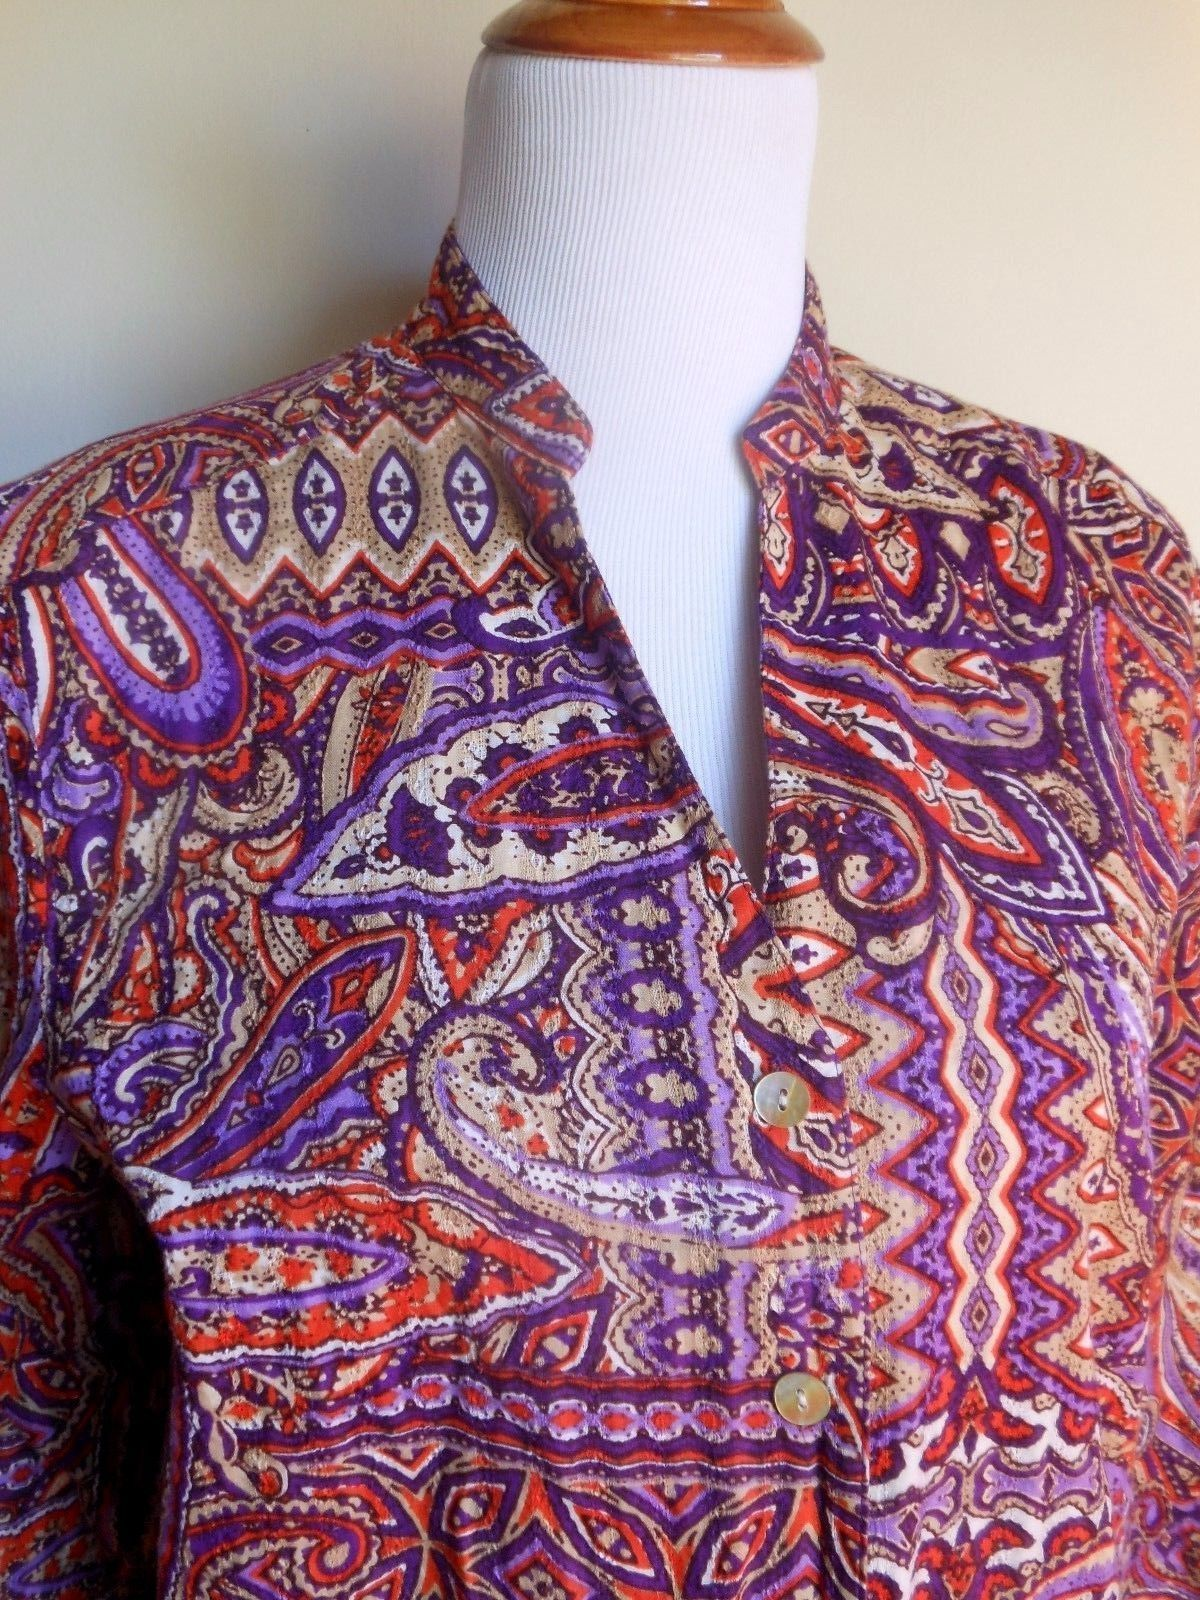 ALFRED DUNNER ~ 16 XL ORANGE PURPLE PAISLEY BUTTON DOWN BLOUSE TOP